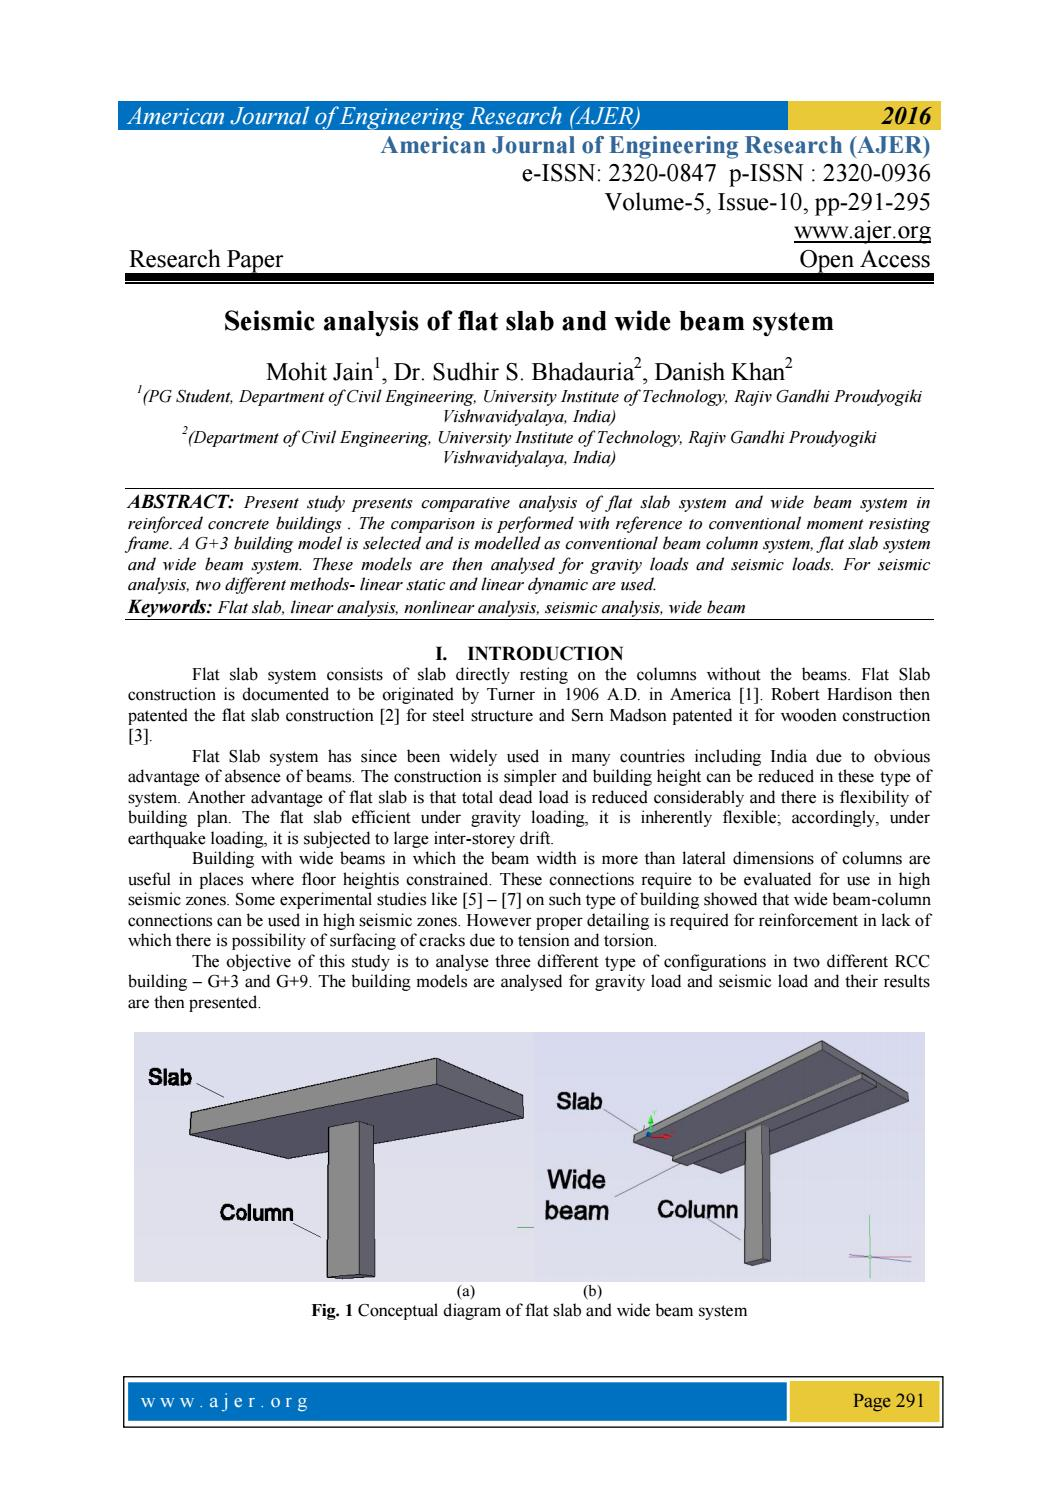 Seismic analysis of flat slab and wide beam system by AJER